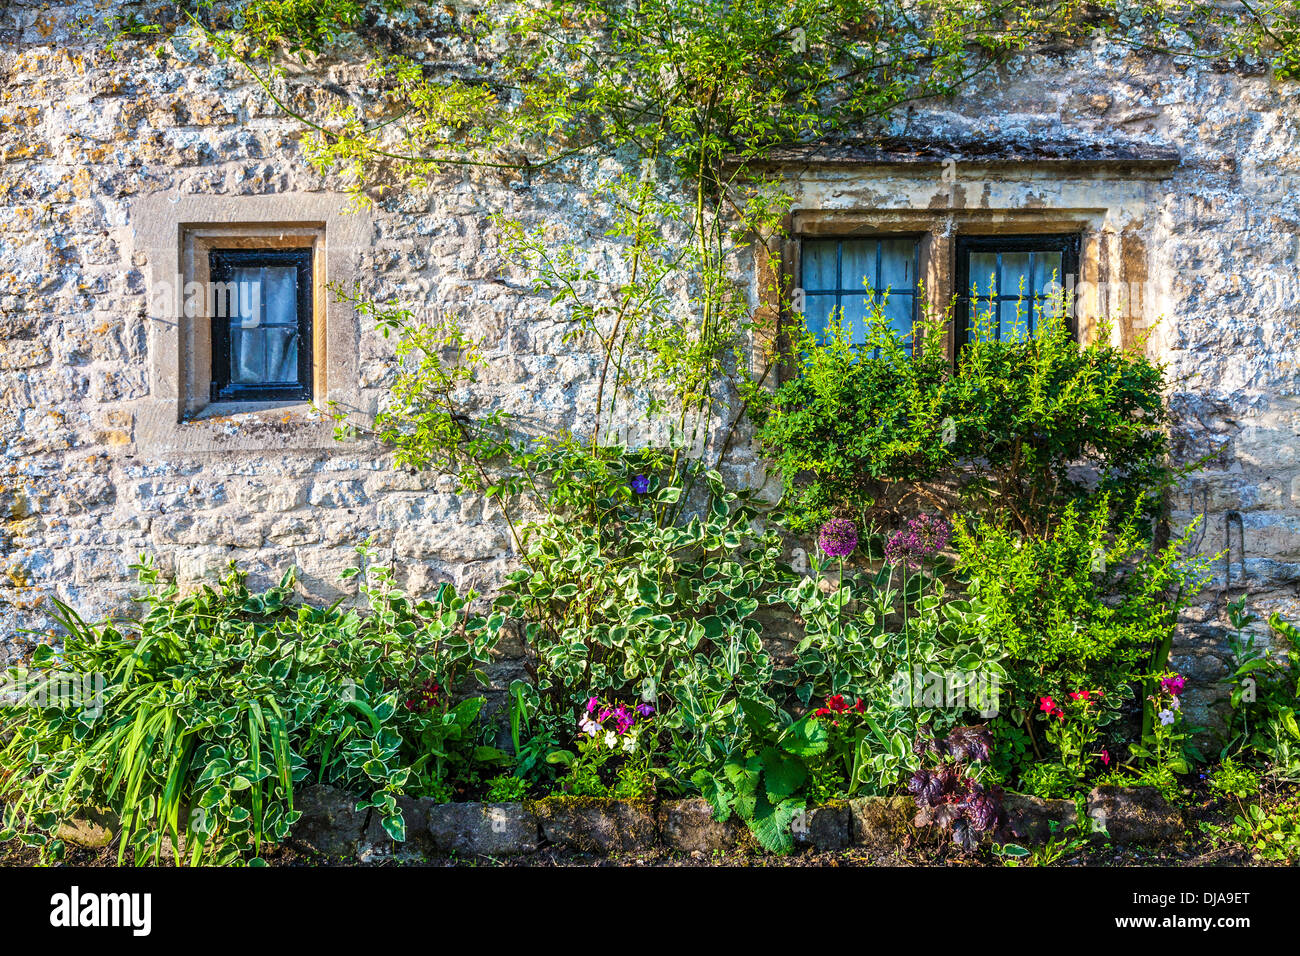 Leaded light windows and front garden in the famous Arlington Row of weavers' cottages in the Cotswold village of Bibury. - Stock Image